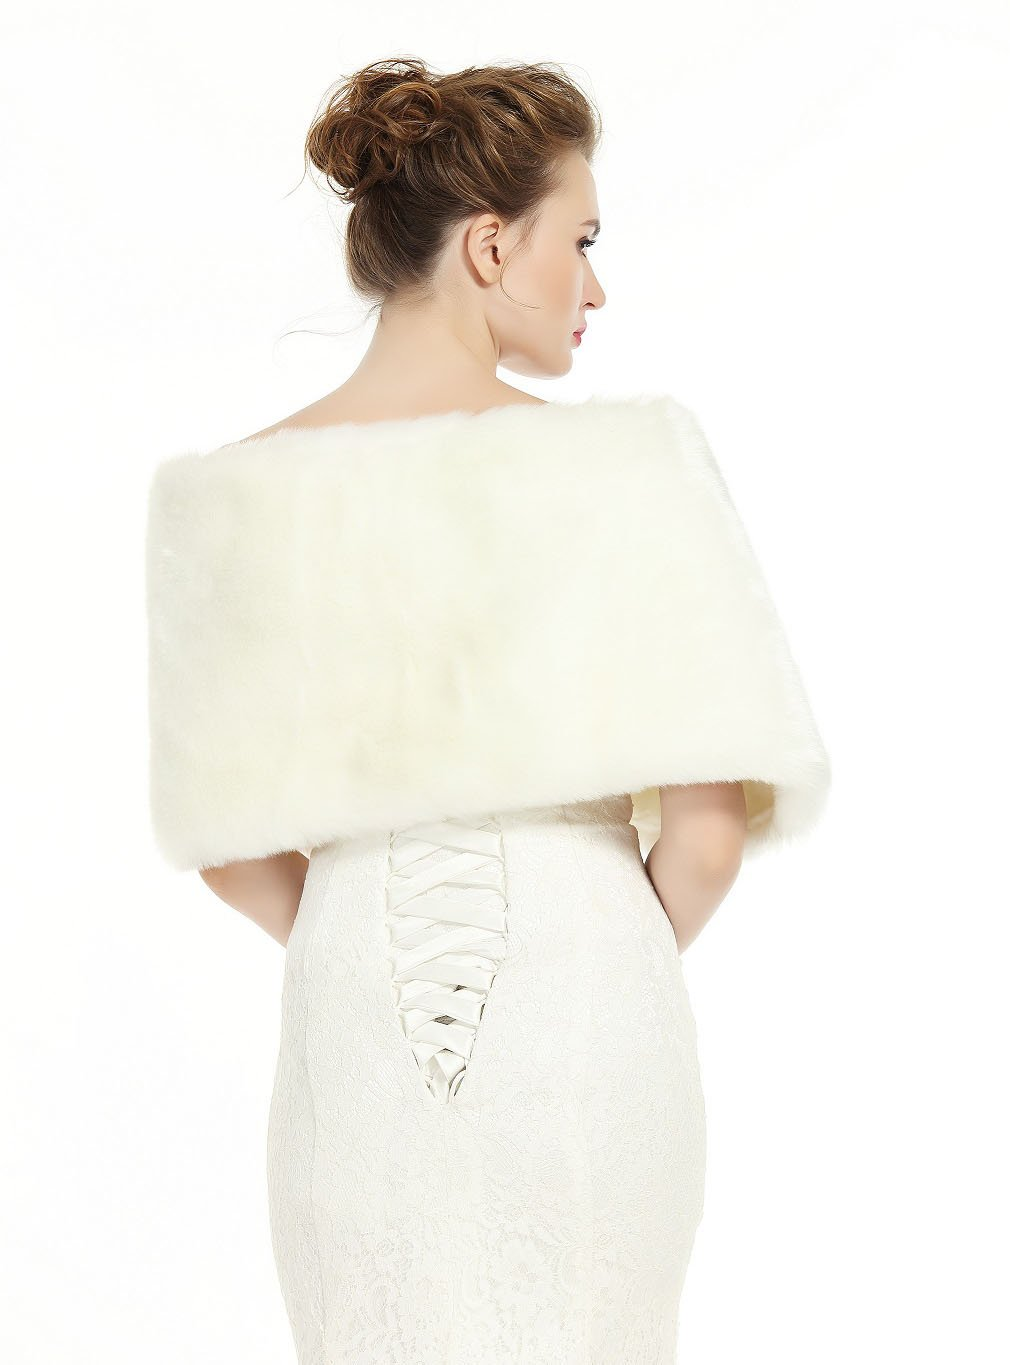 Faux Fur Wrap Shawl Women's Shrug Bridal Stole for Winter Wedding Party Free Brooch Ivory by BEAUTELICATE (Image #5)